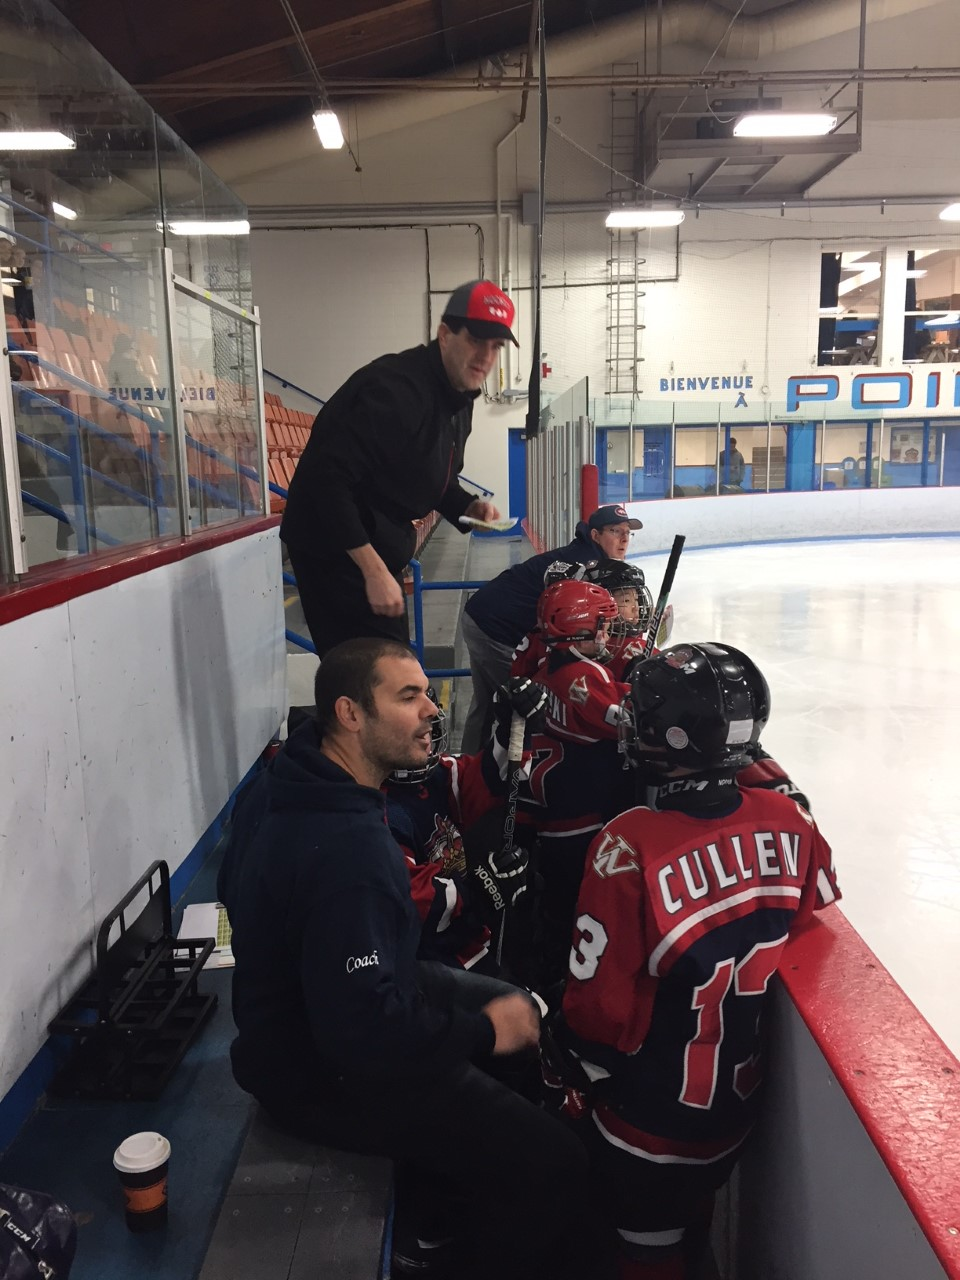 https://www.hockeywestisland.org/wp-content/uploads/2019/01/novice-B-Remparts.jpg